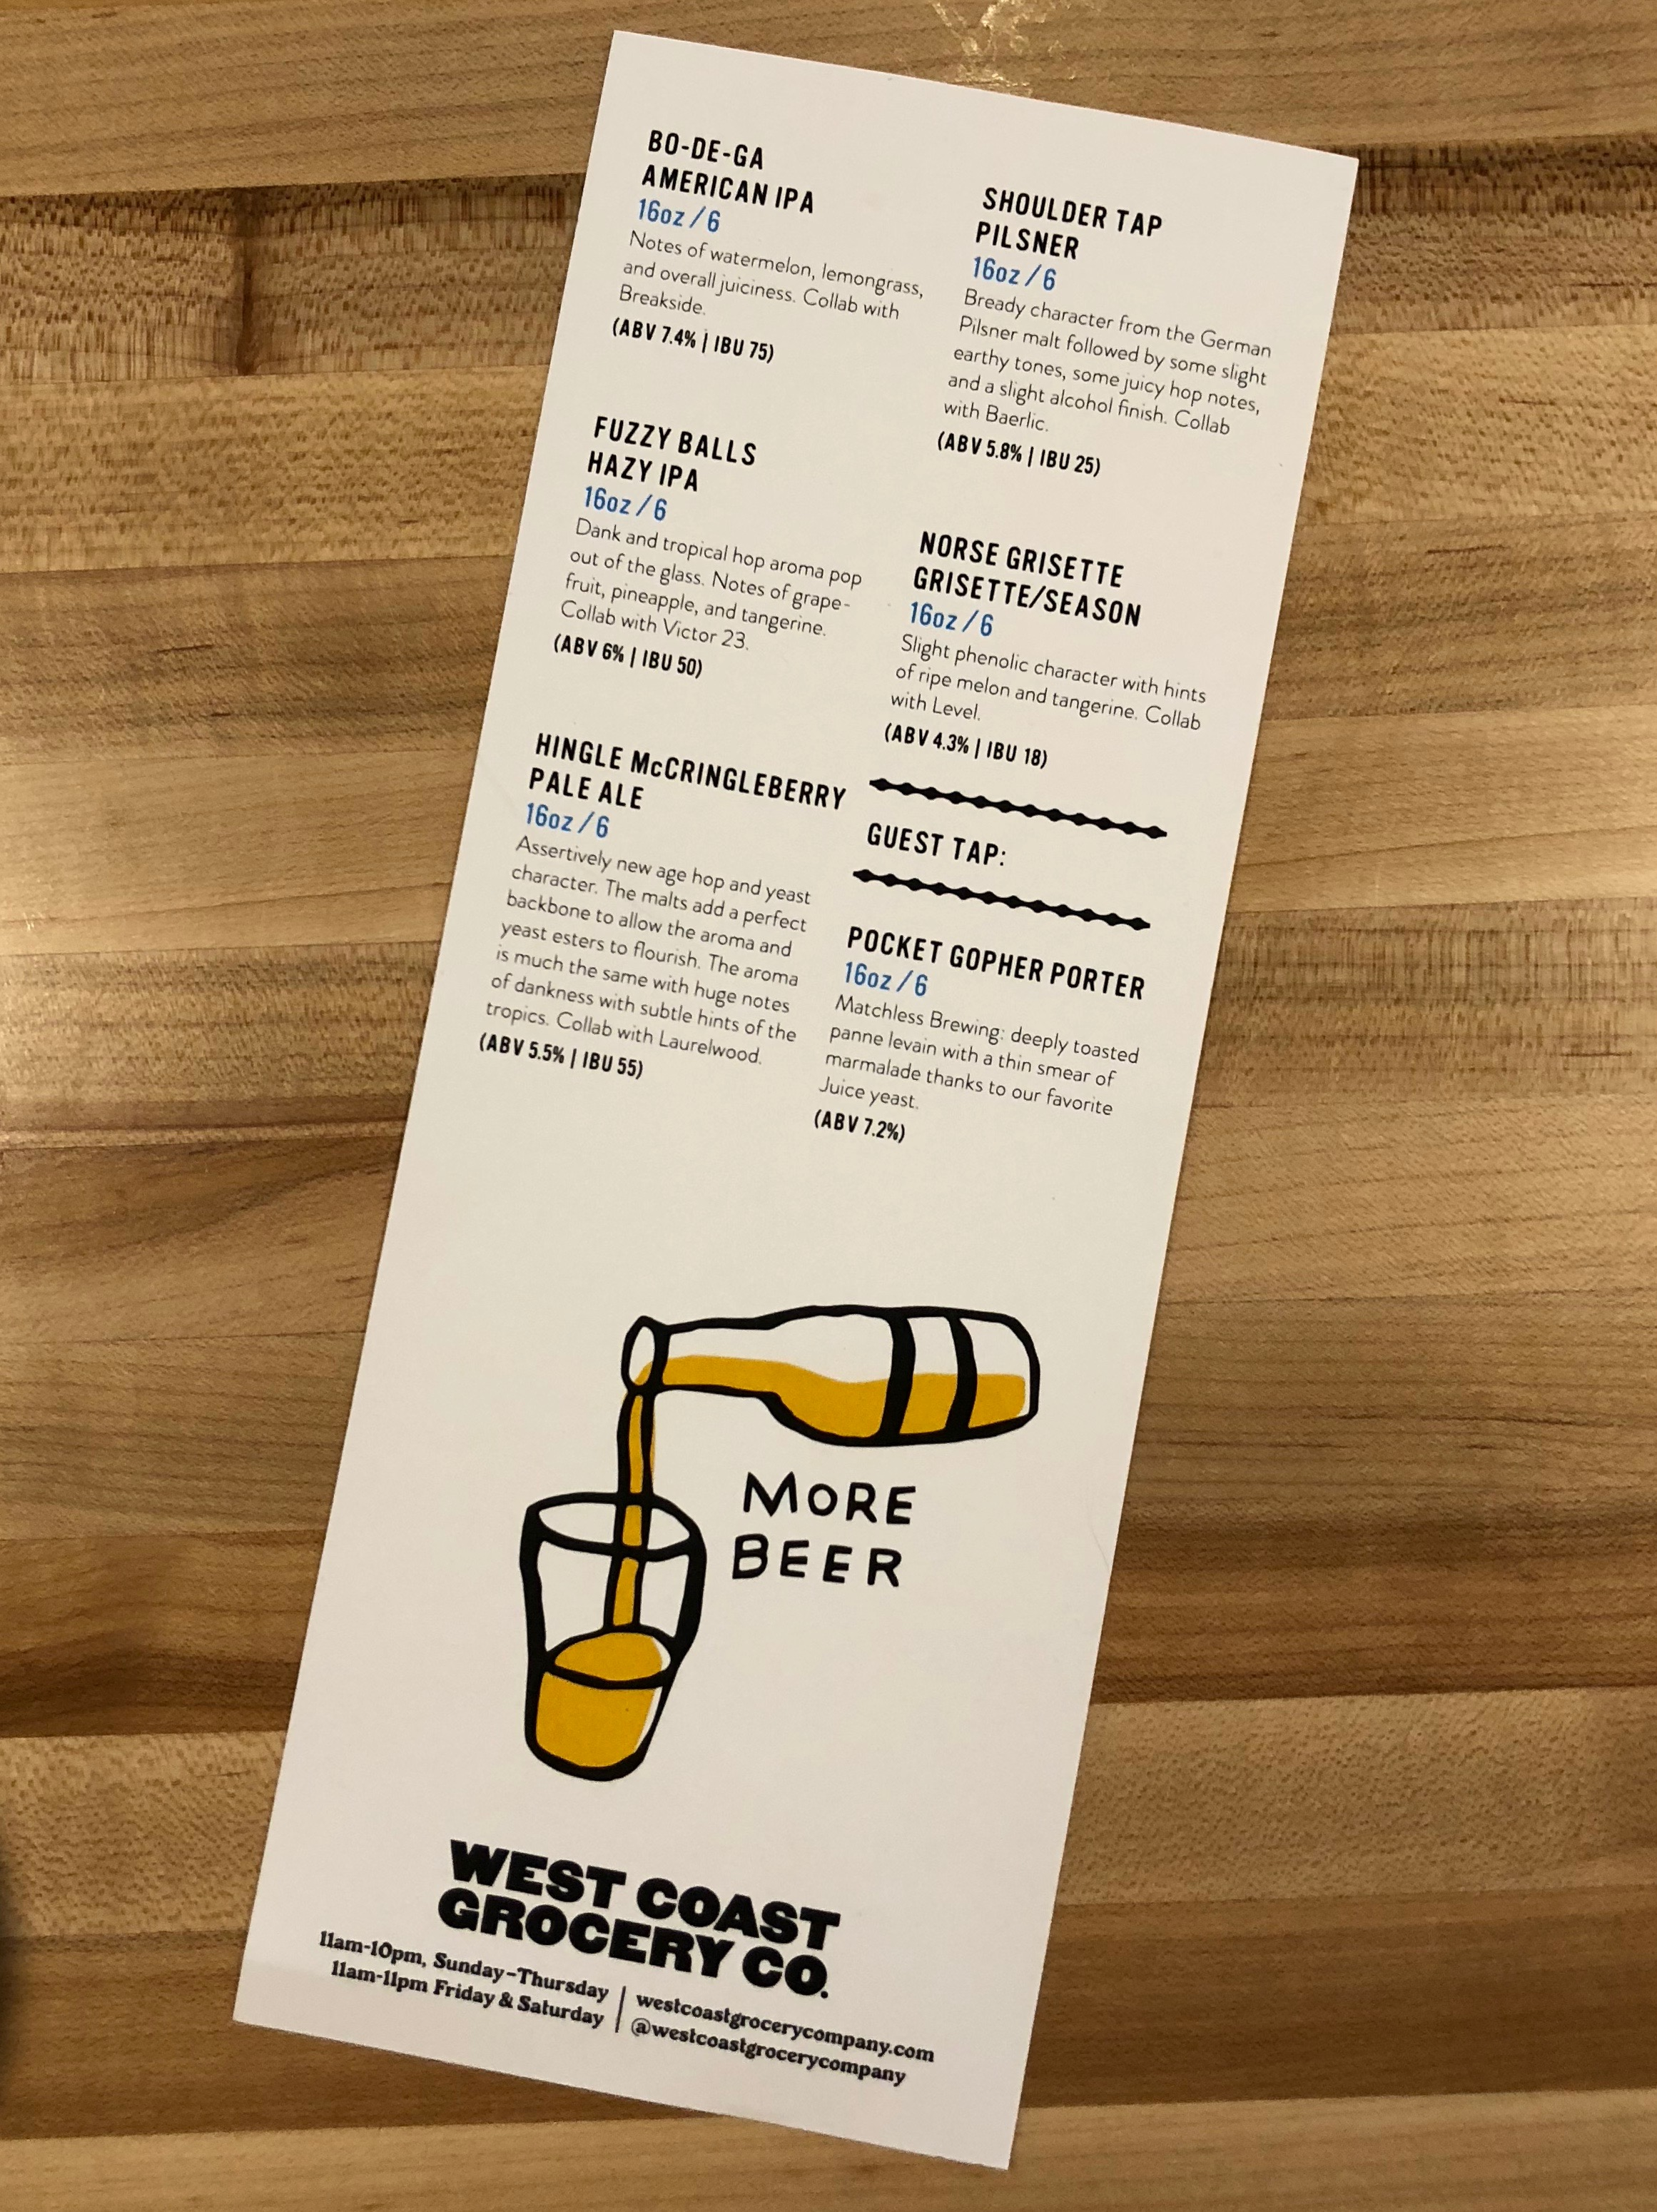 West Coast Grocery Co. opening Beer Menu.